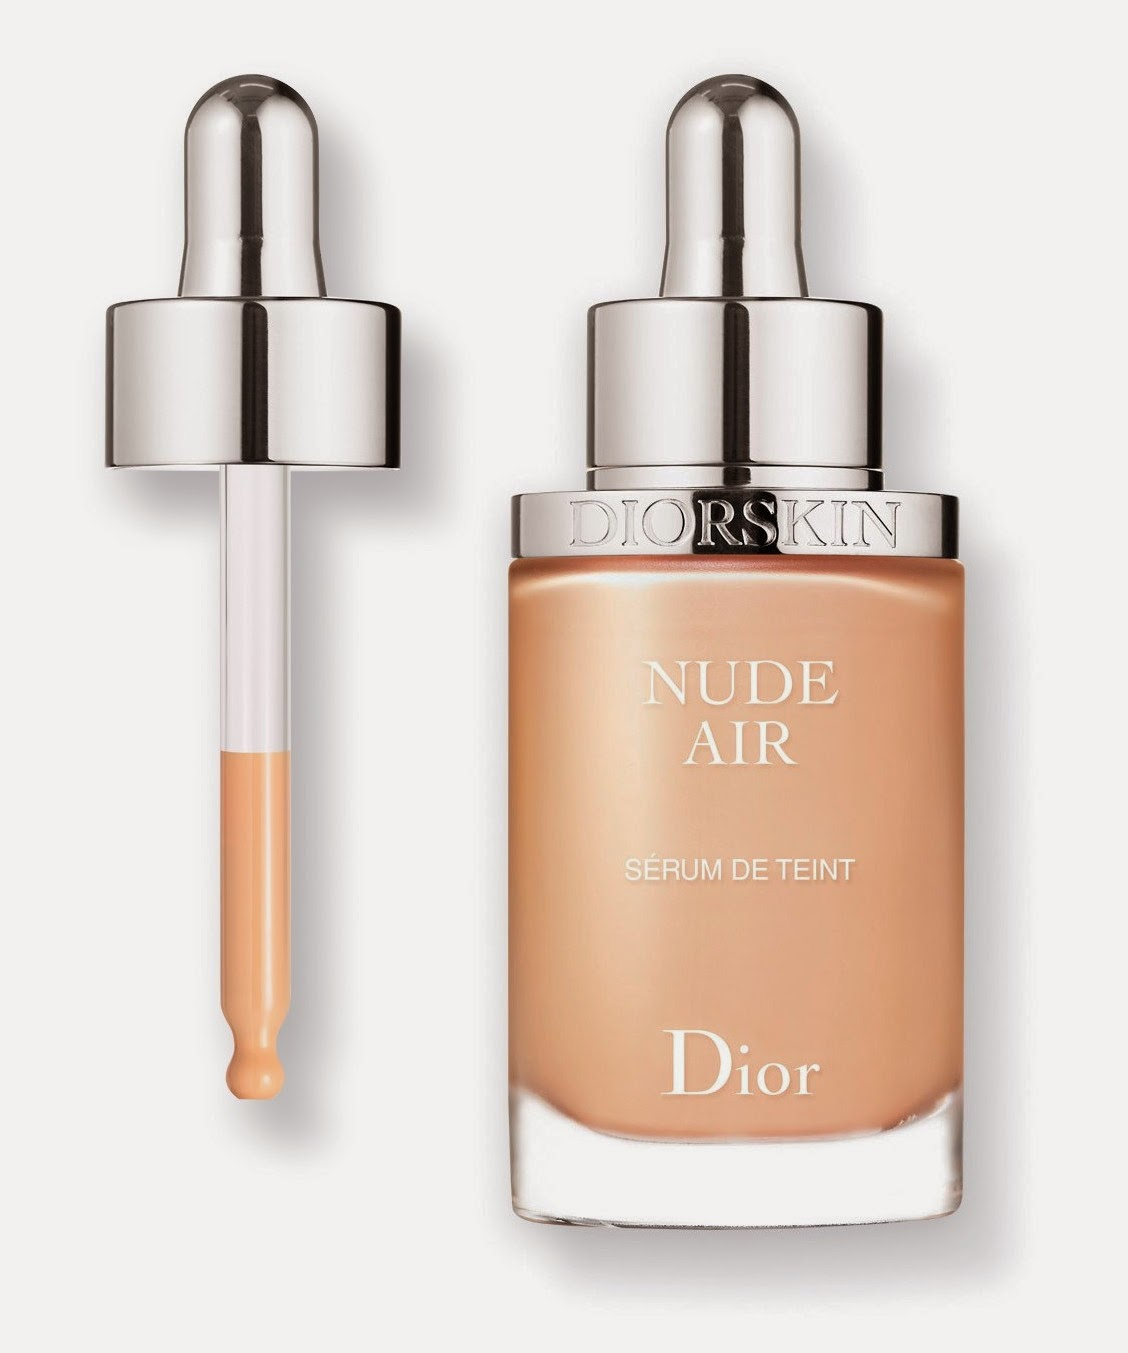 Fashionista Smile: Dior Beauty and Make Up - Tricks from the